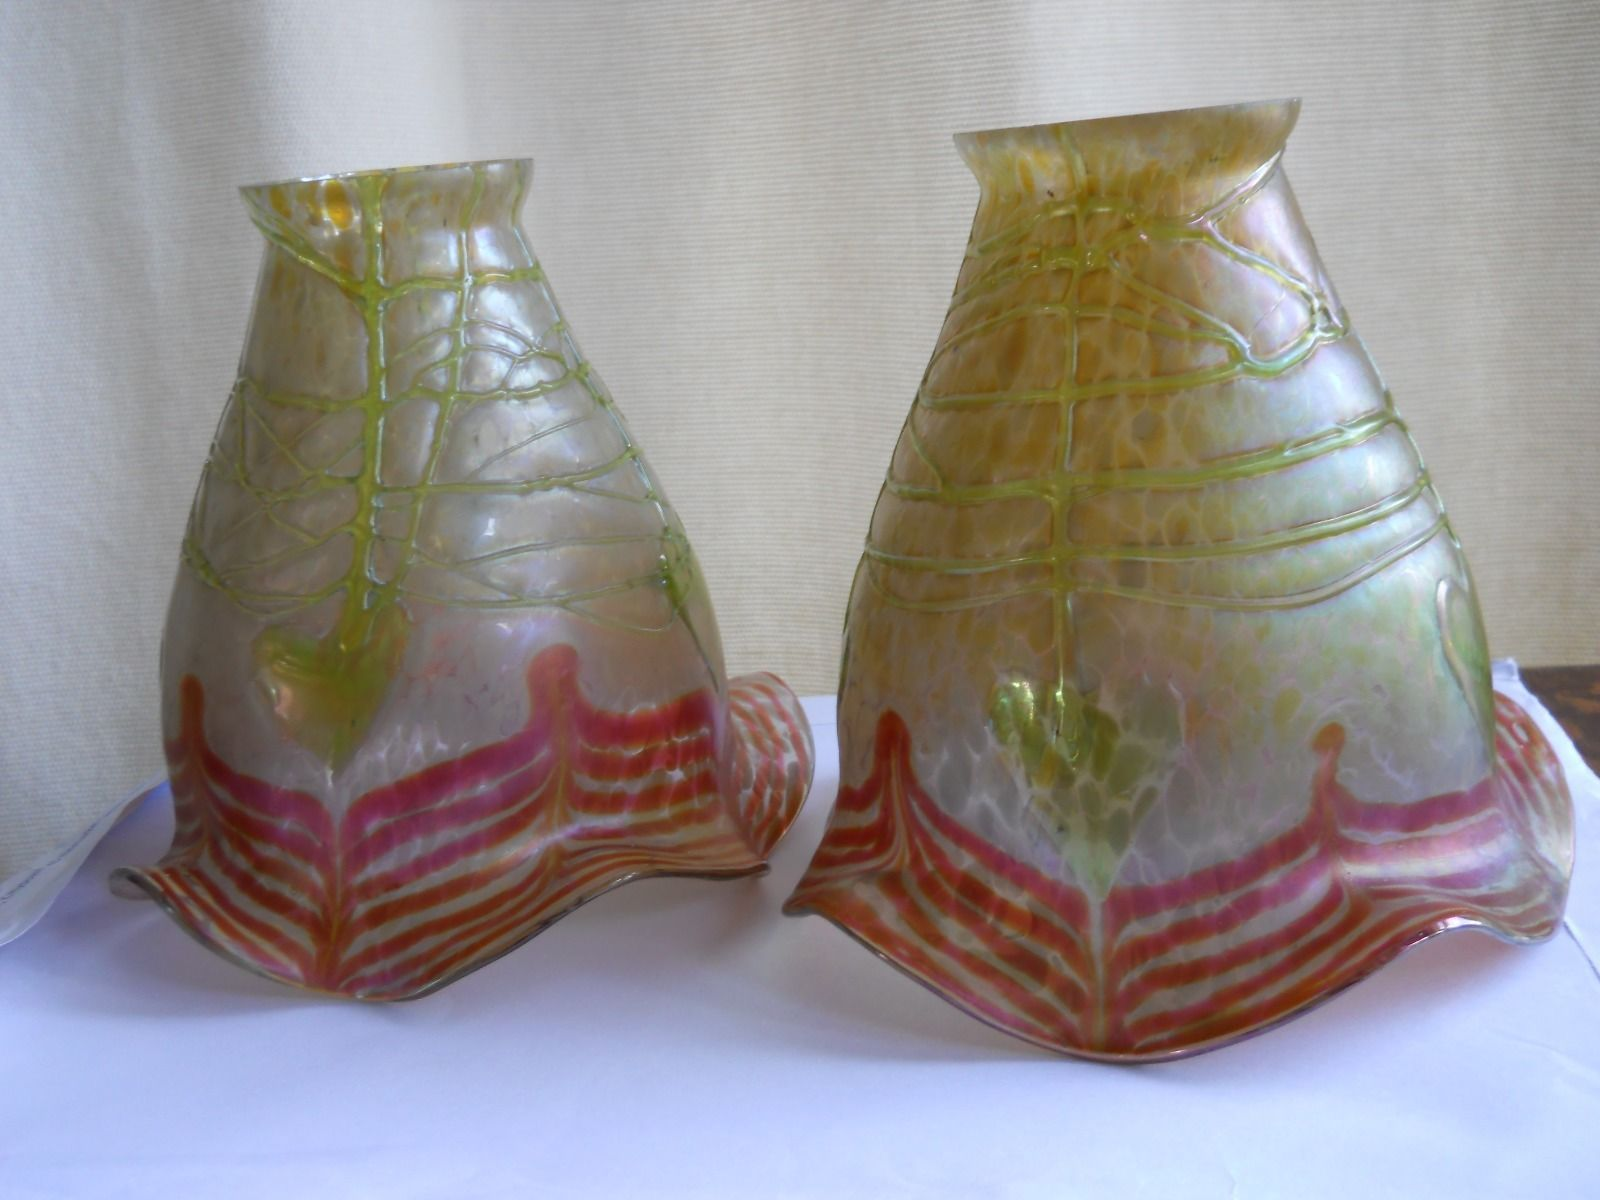 """A Pair of Decorative Art/Art Nouveau Loetz/Krallik Art Glass Shades.  They are Loetz or Krallik with an art nouveau motif of organic form in red and green.  They are approx 5.5"""" or 140mm high They are approx 6"""" or 150mm wide at the flared end. The fitter rim is approx 2"""" or 50mm.   eBay"""